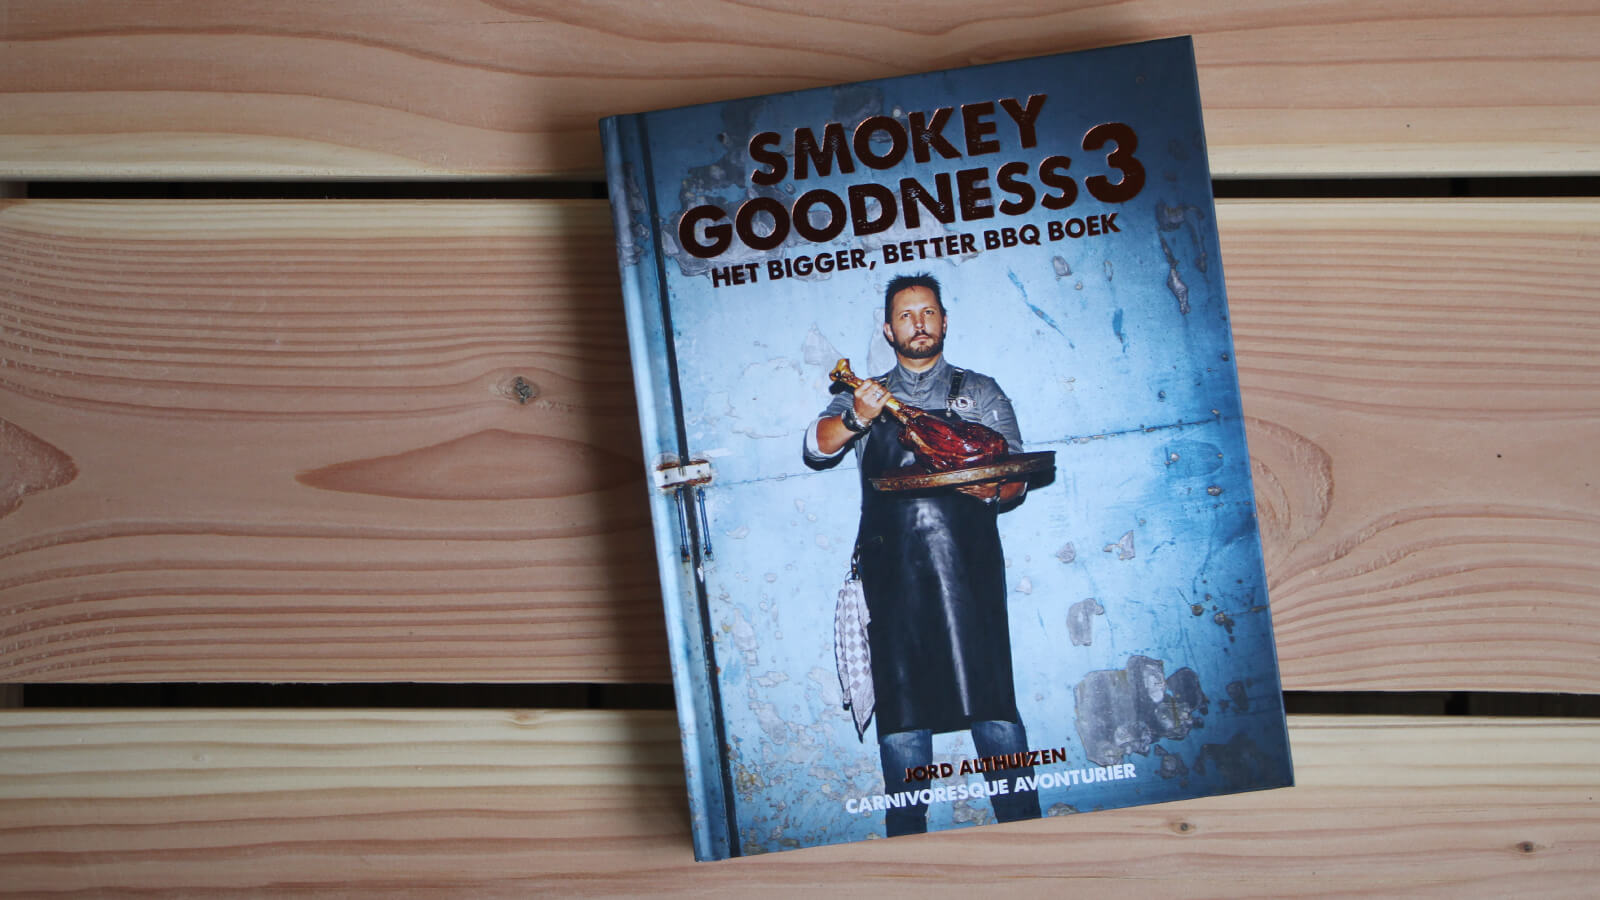 Boekreview: Smokey Goodness 3 - Jord Althuizen